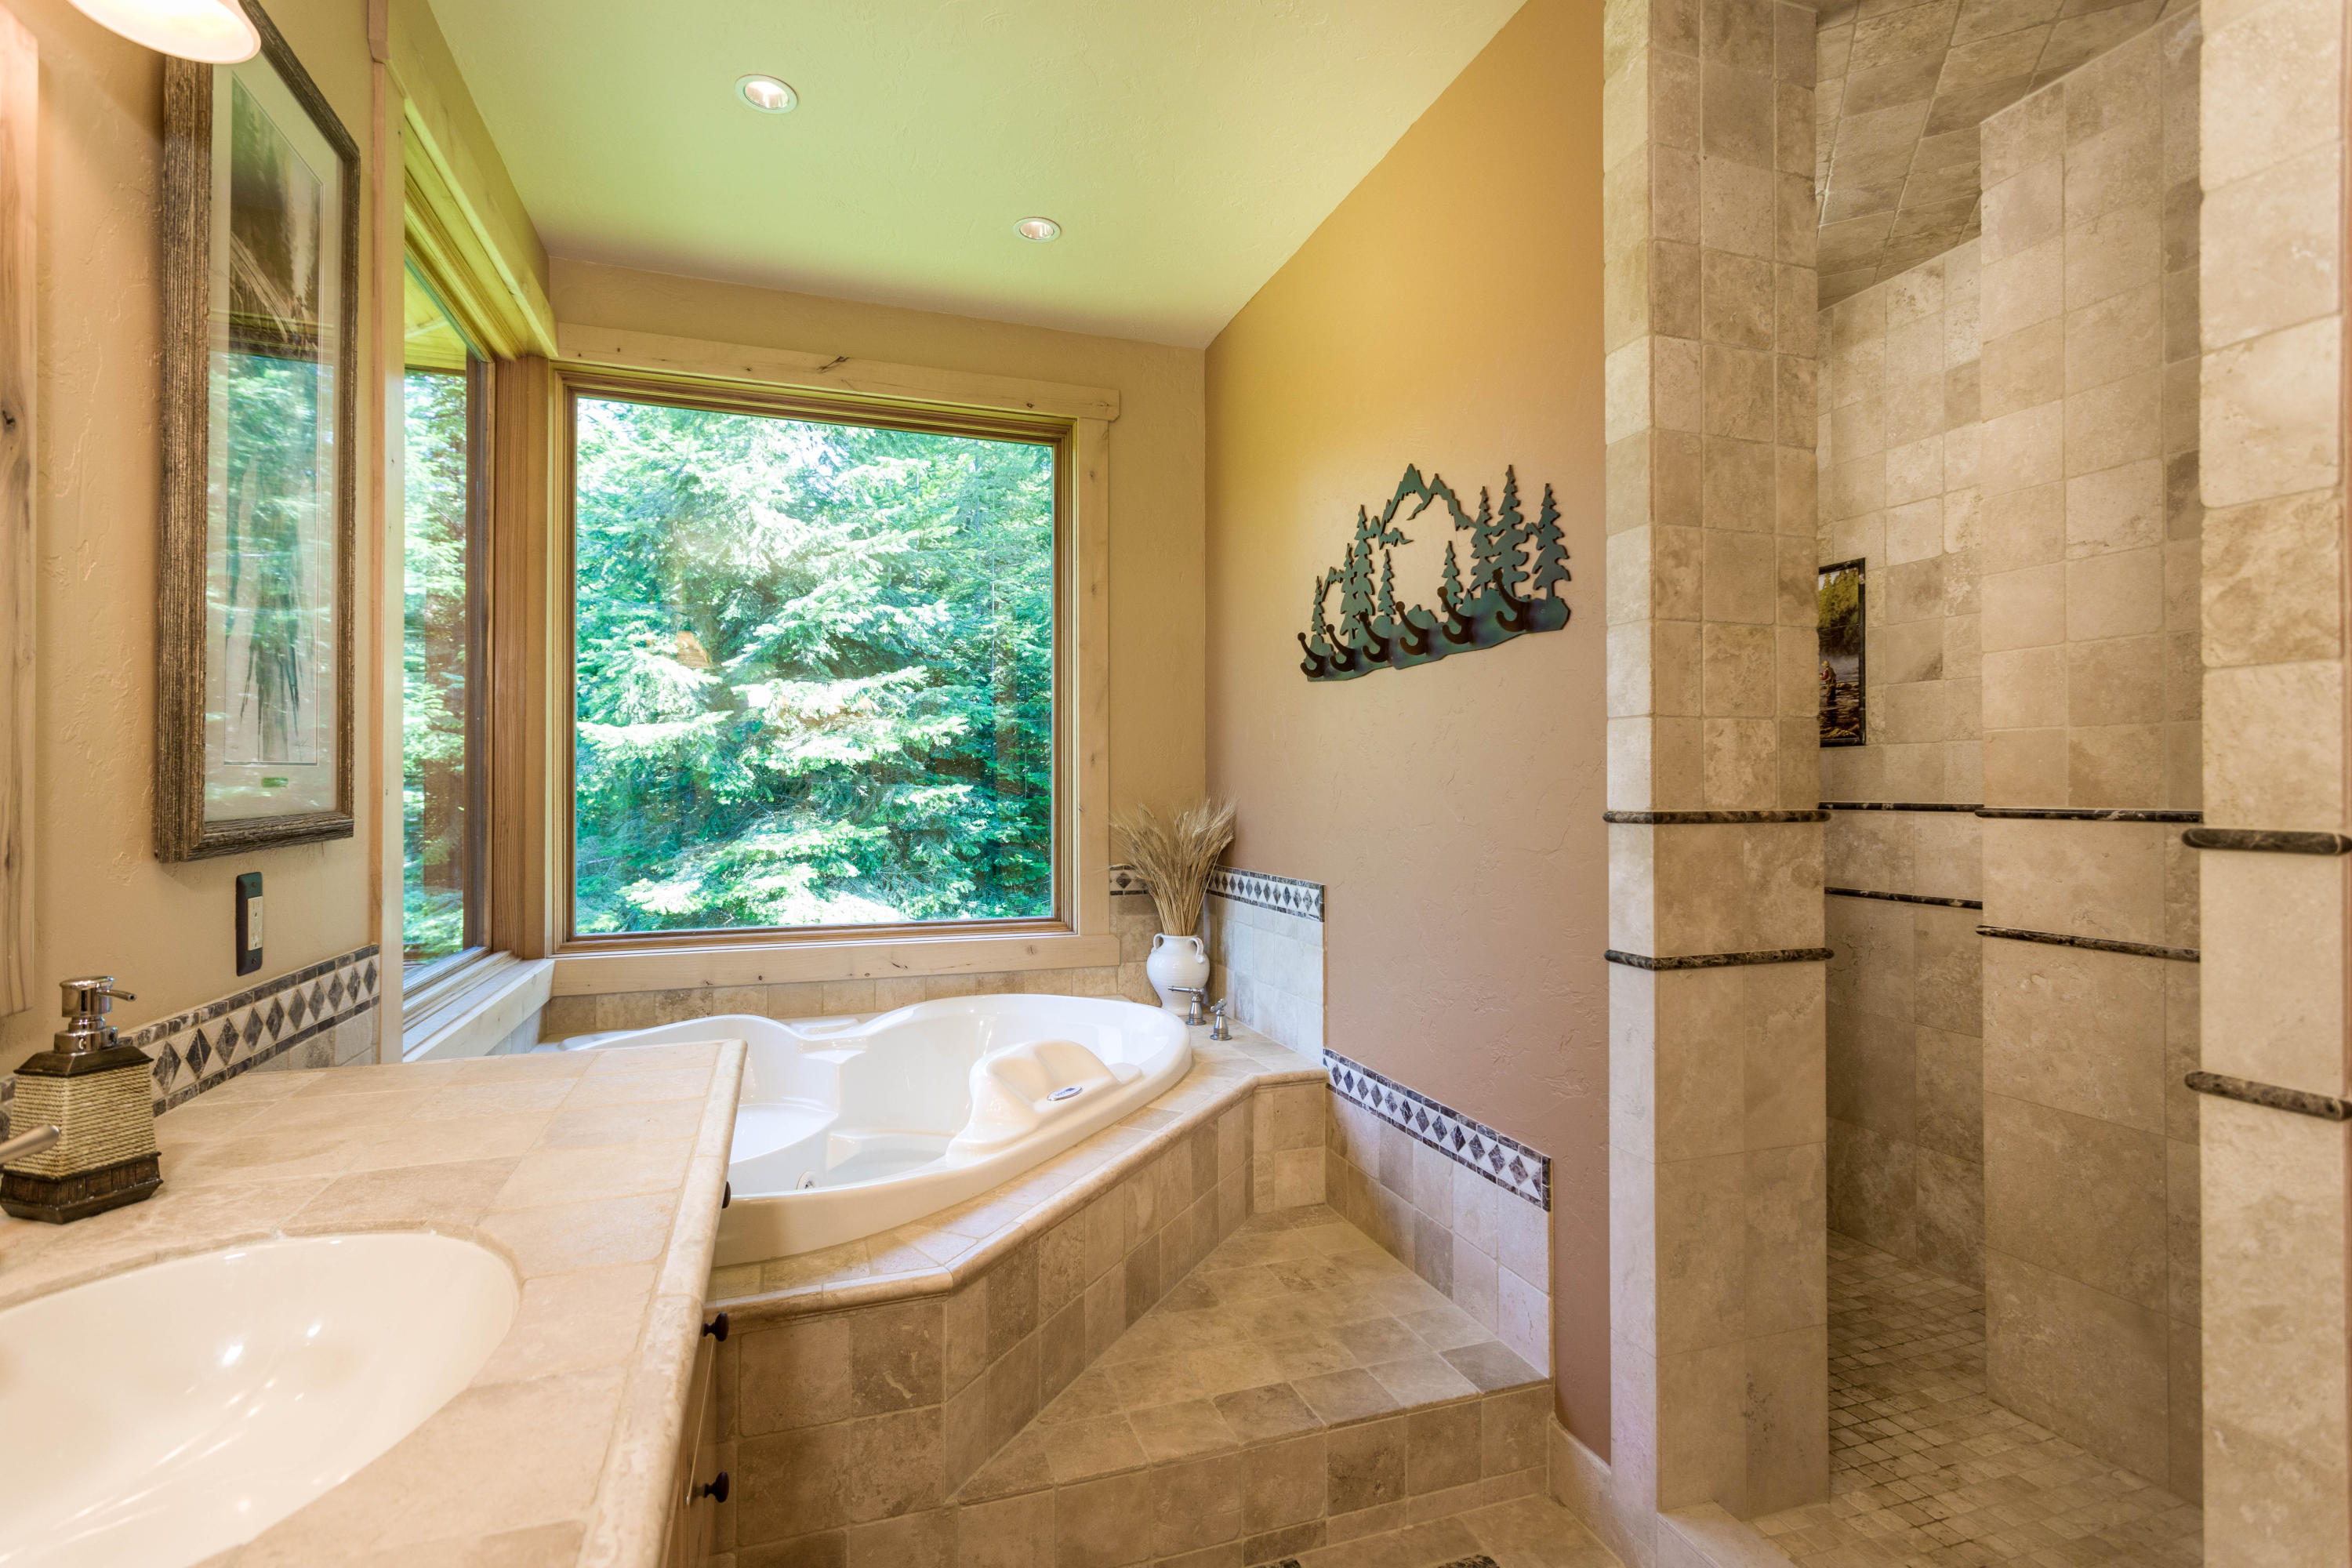 Jetted tub & walk in tile shower